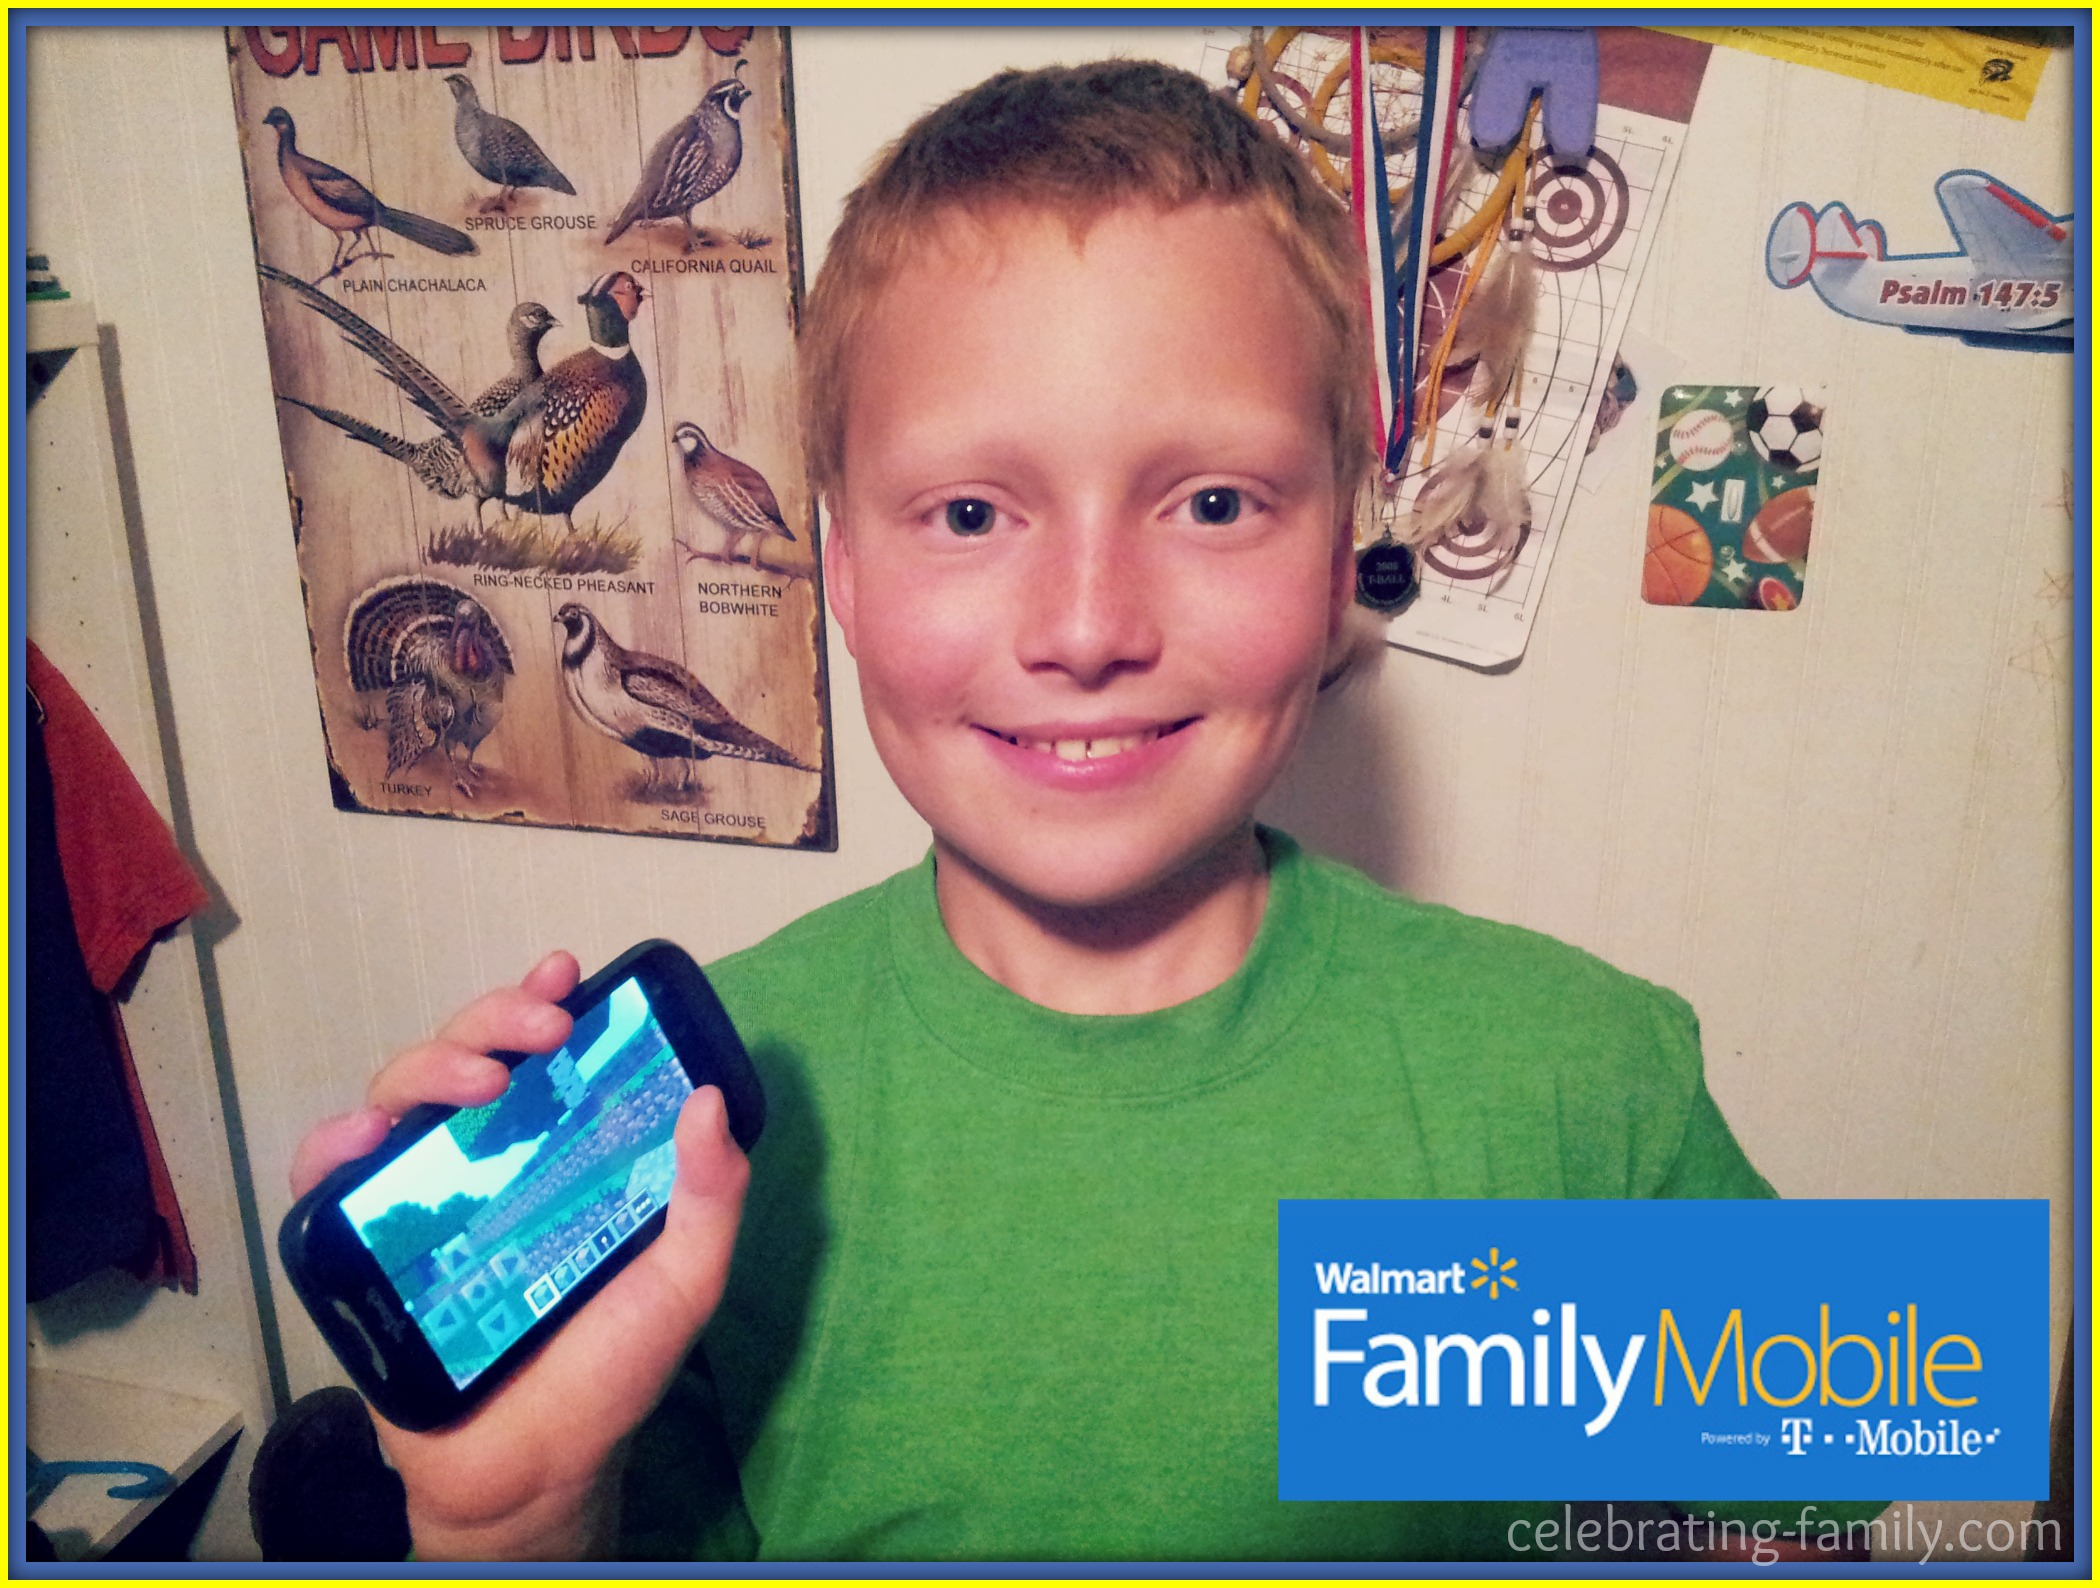 Family Mobile unlimited plans #FamilyMobileSaves